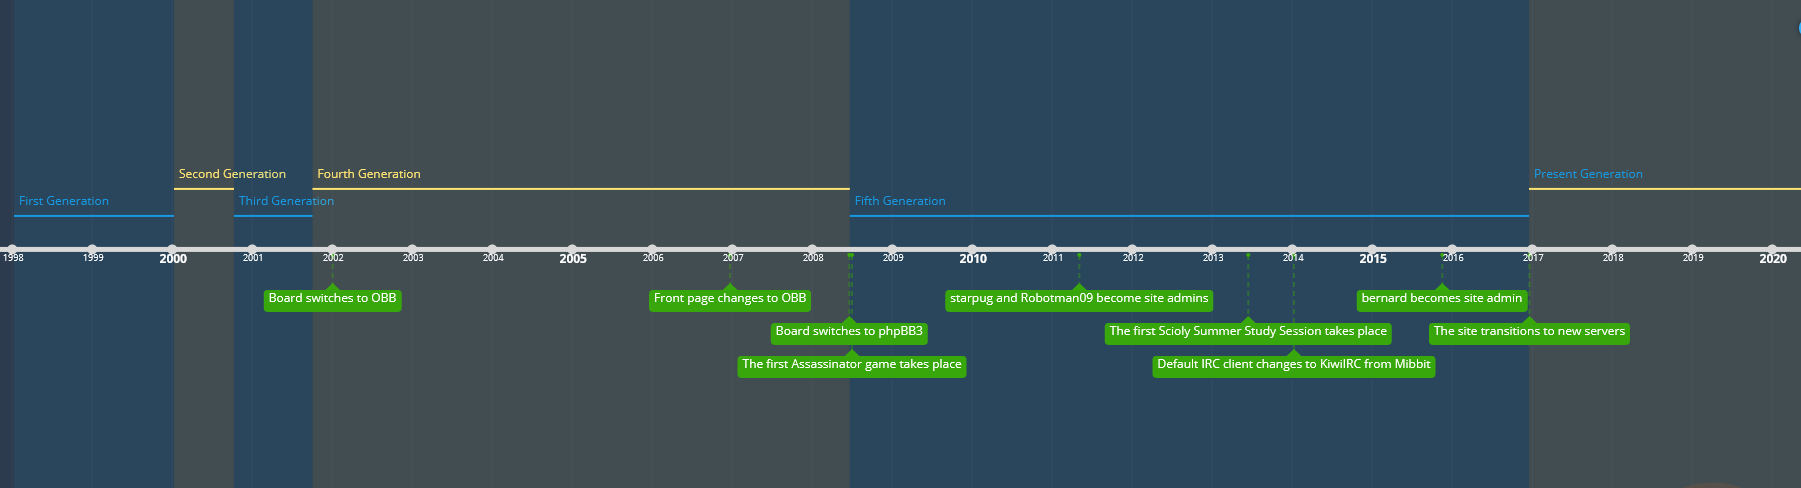 The beginning of the timeline of the site